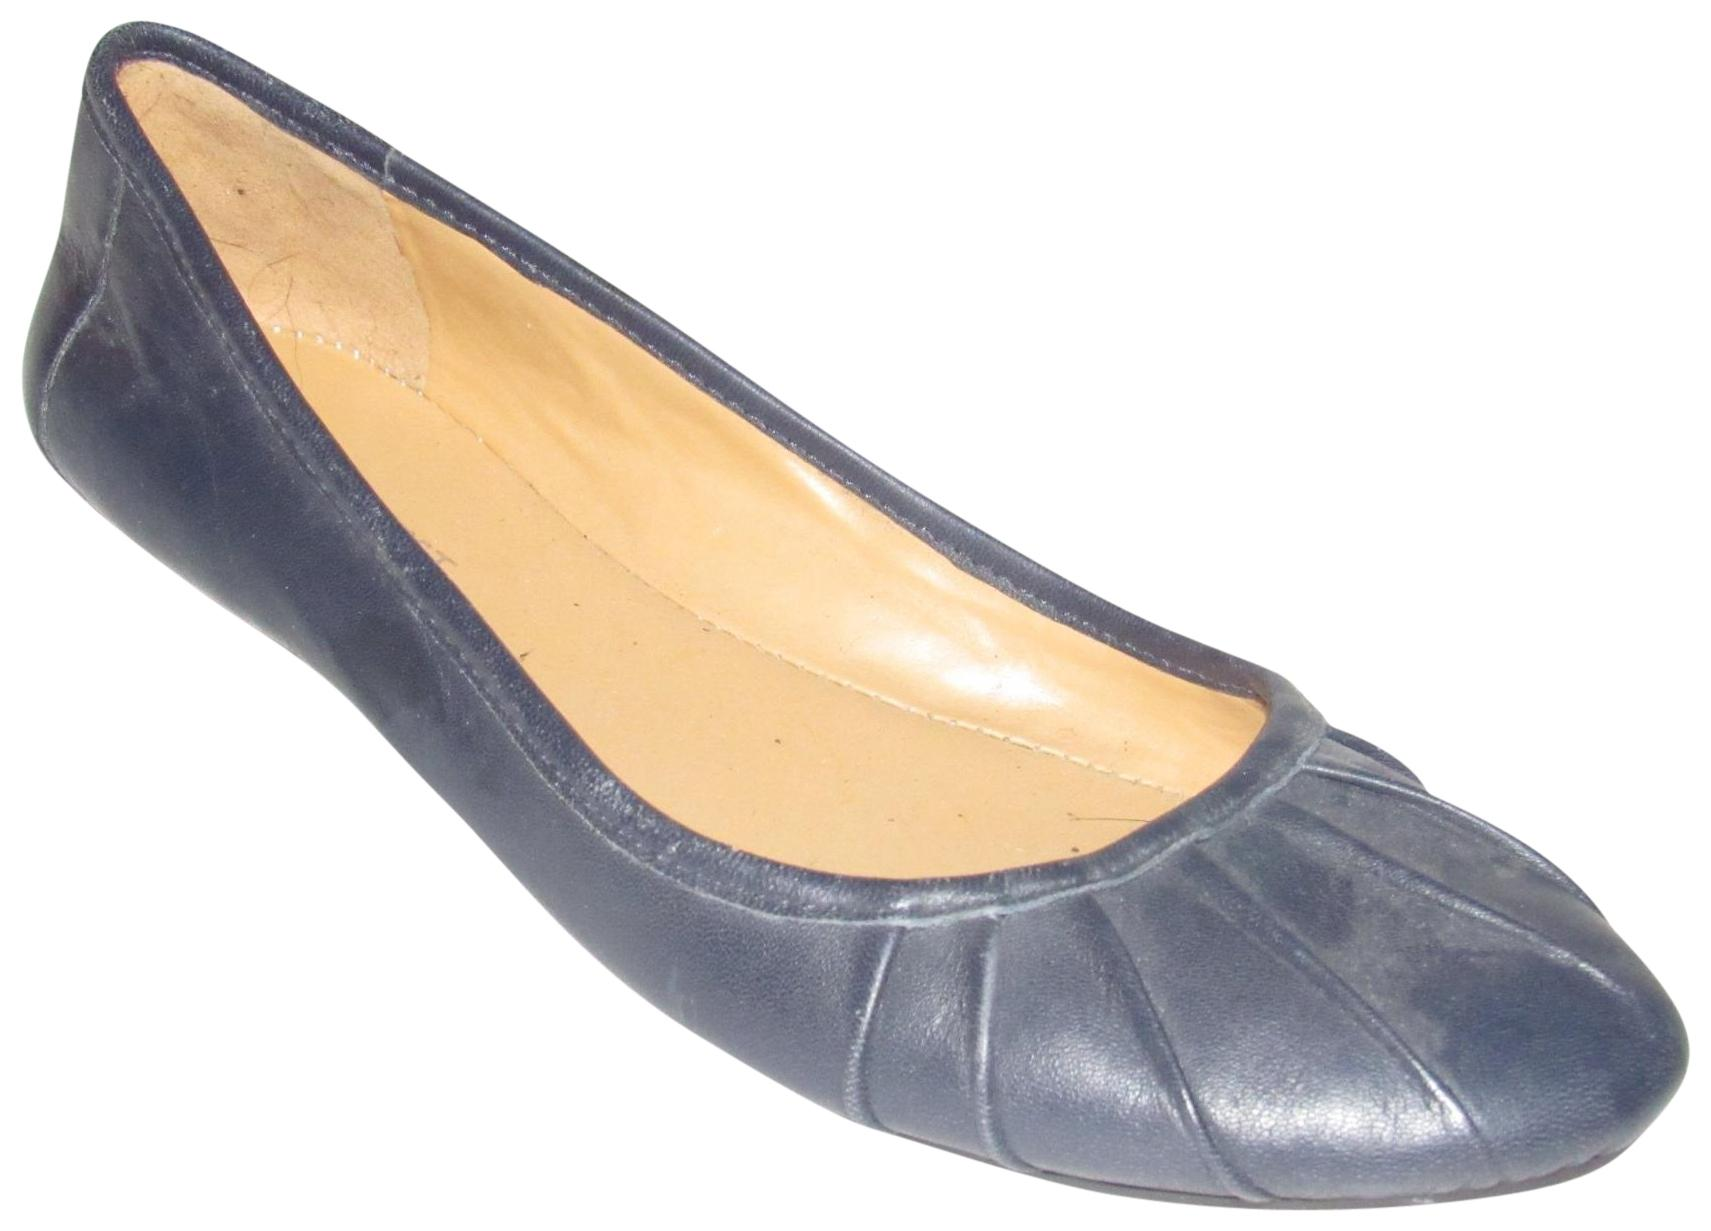 03fe83339827 Nine West Navy Blue Leather Modern Shoes Designer Flats Size US US US 7  Regular (M